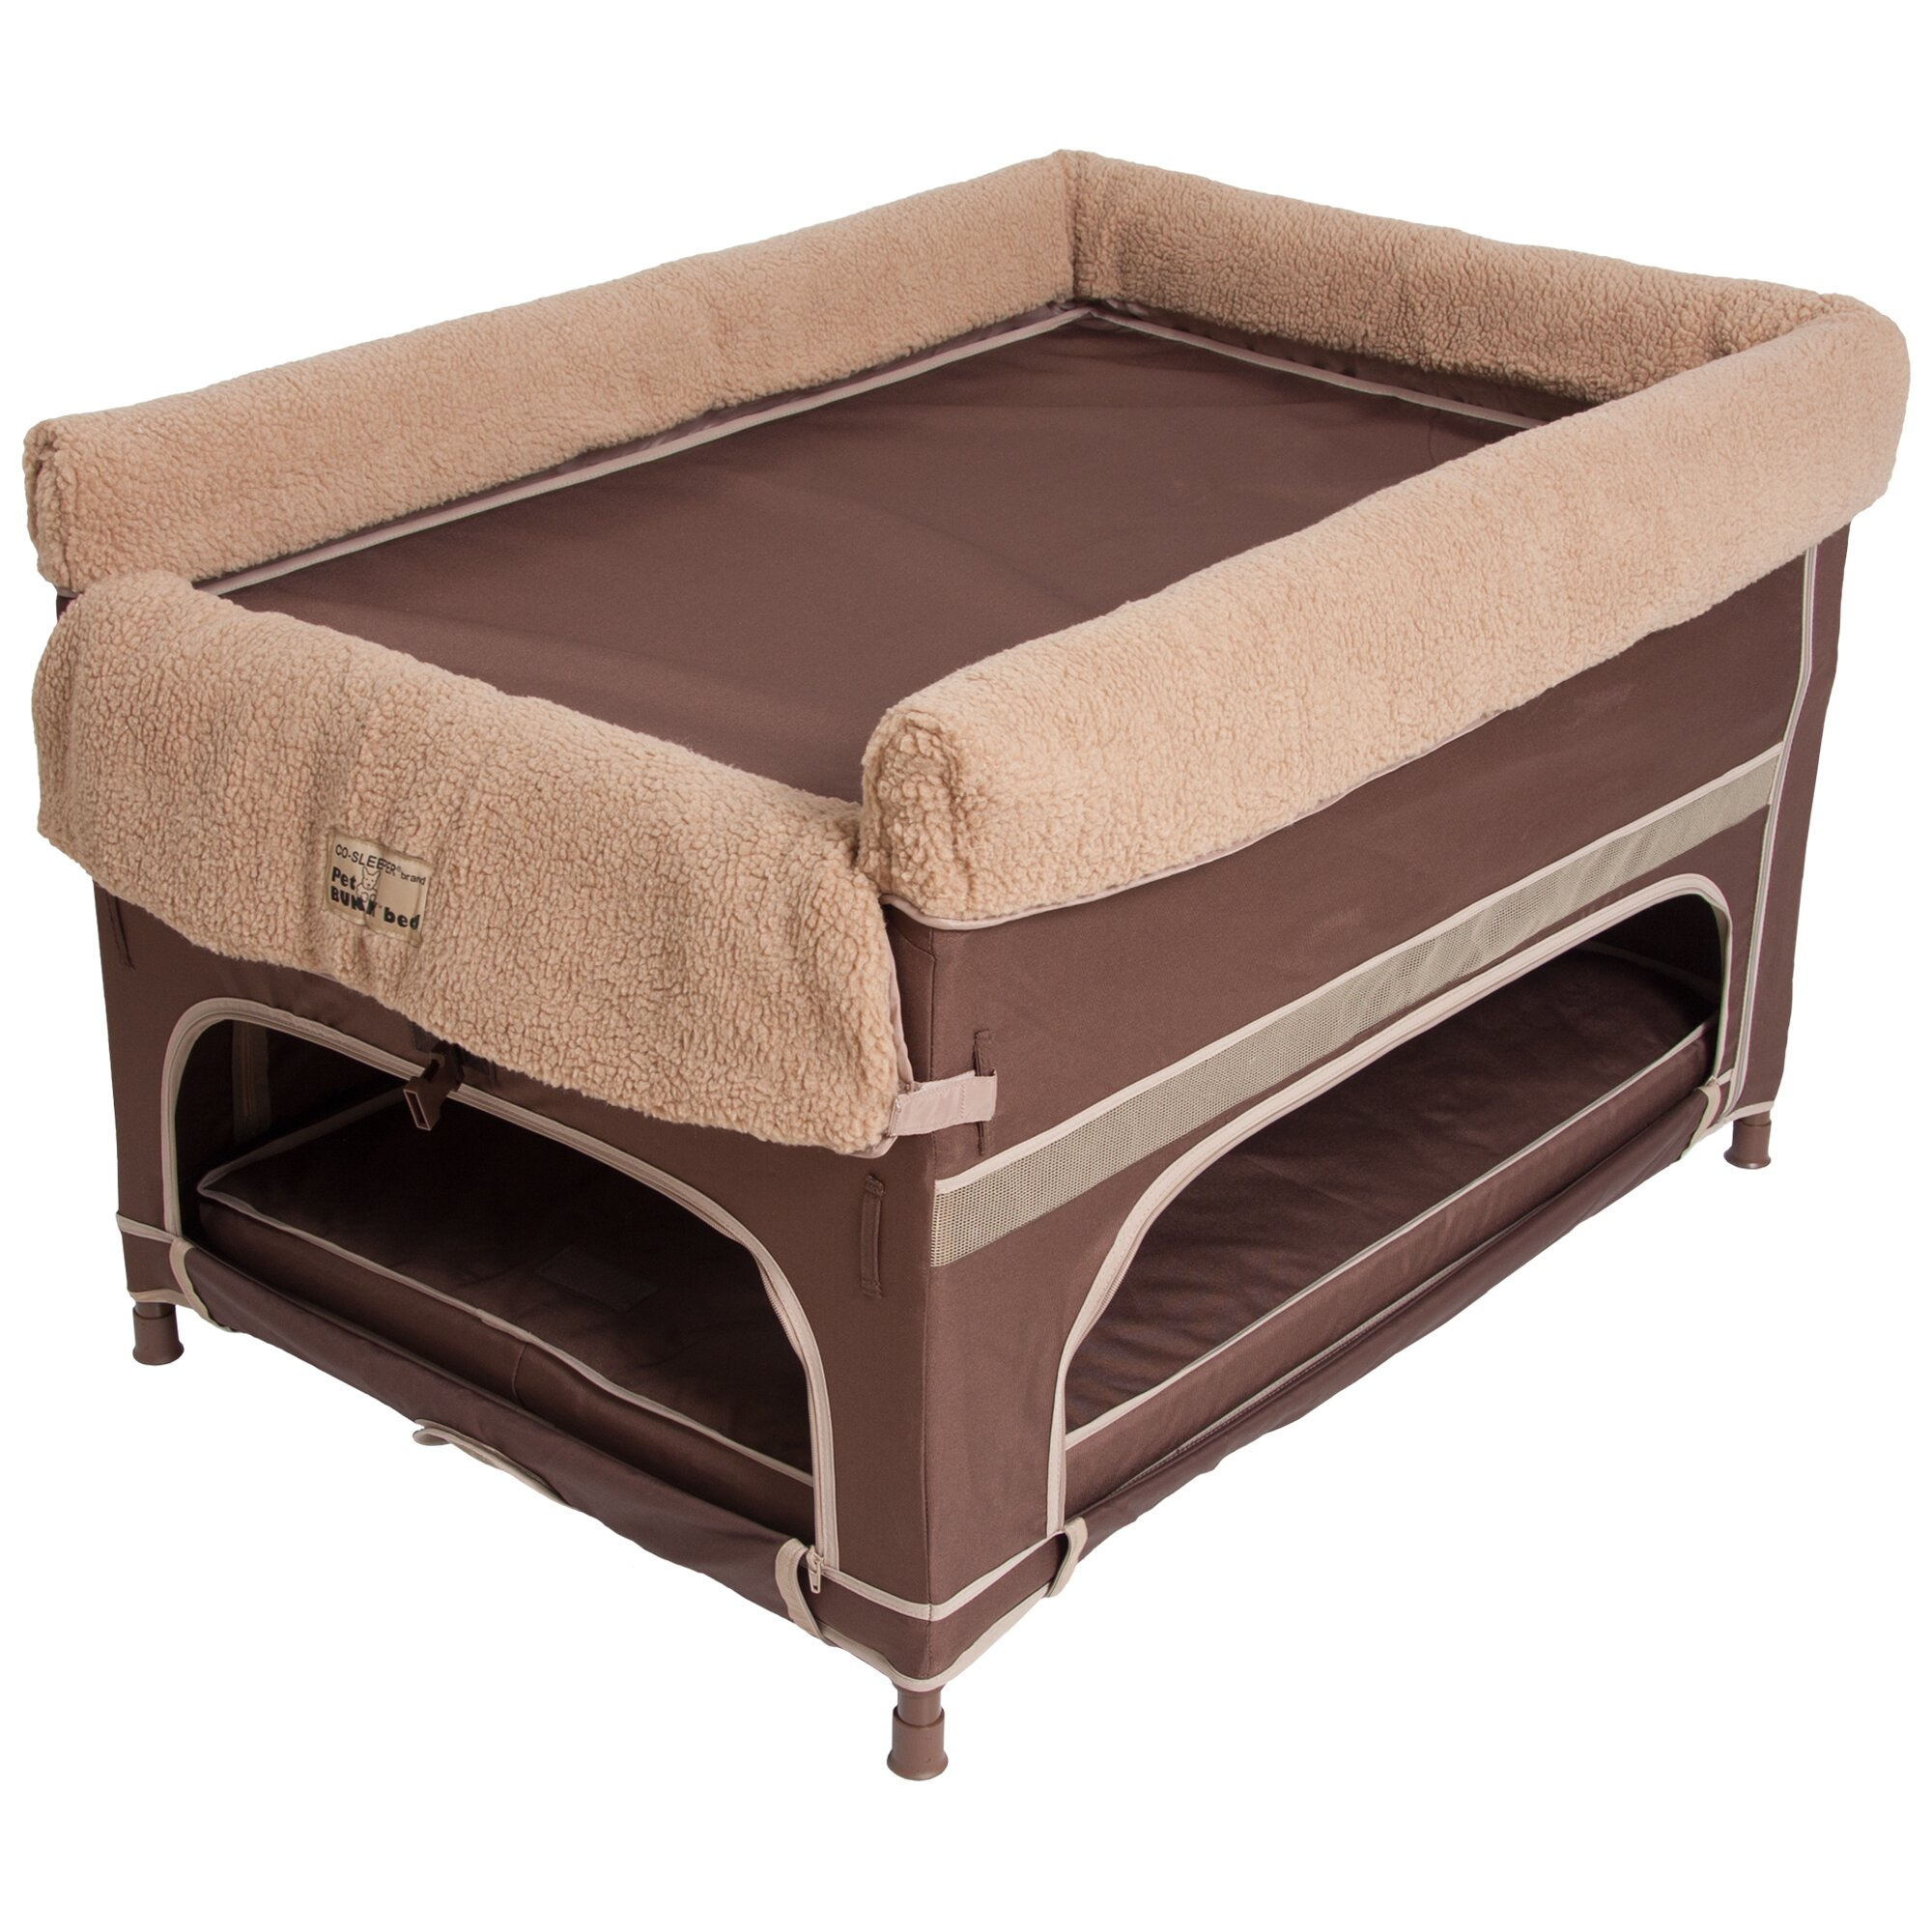 Arm 39 s reach duplex pet bunk dog cot wayfair for Pet bunk bed gallery